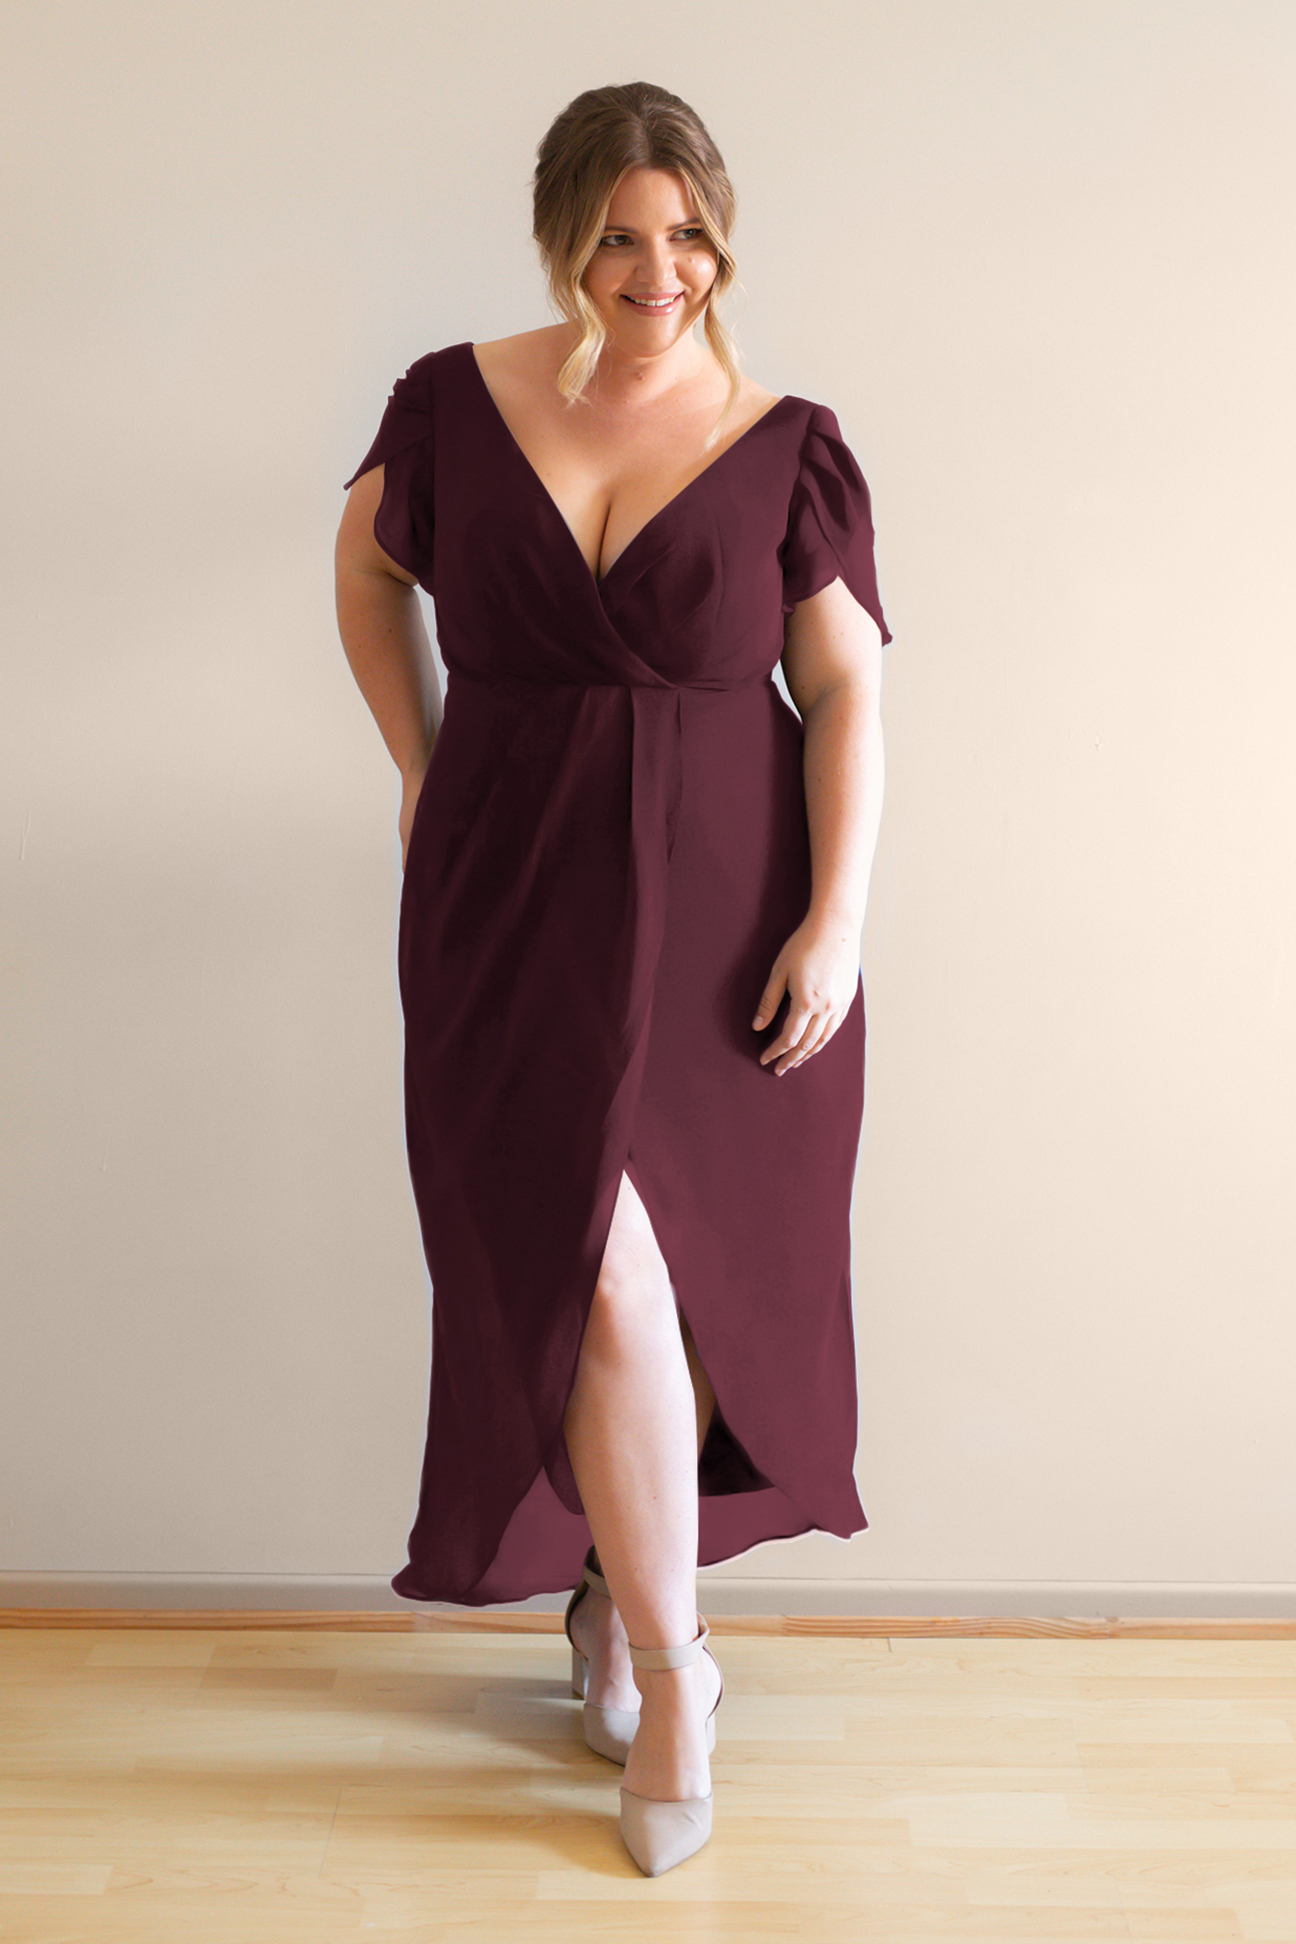 Zara burgundy bridesmaids cocktail dress with sleeves curvy